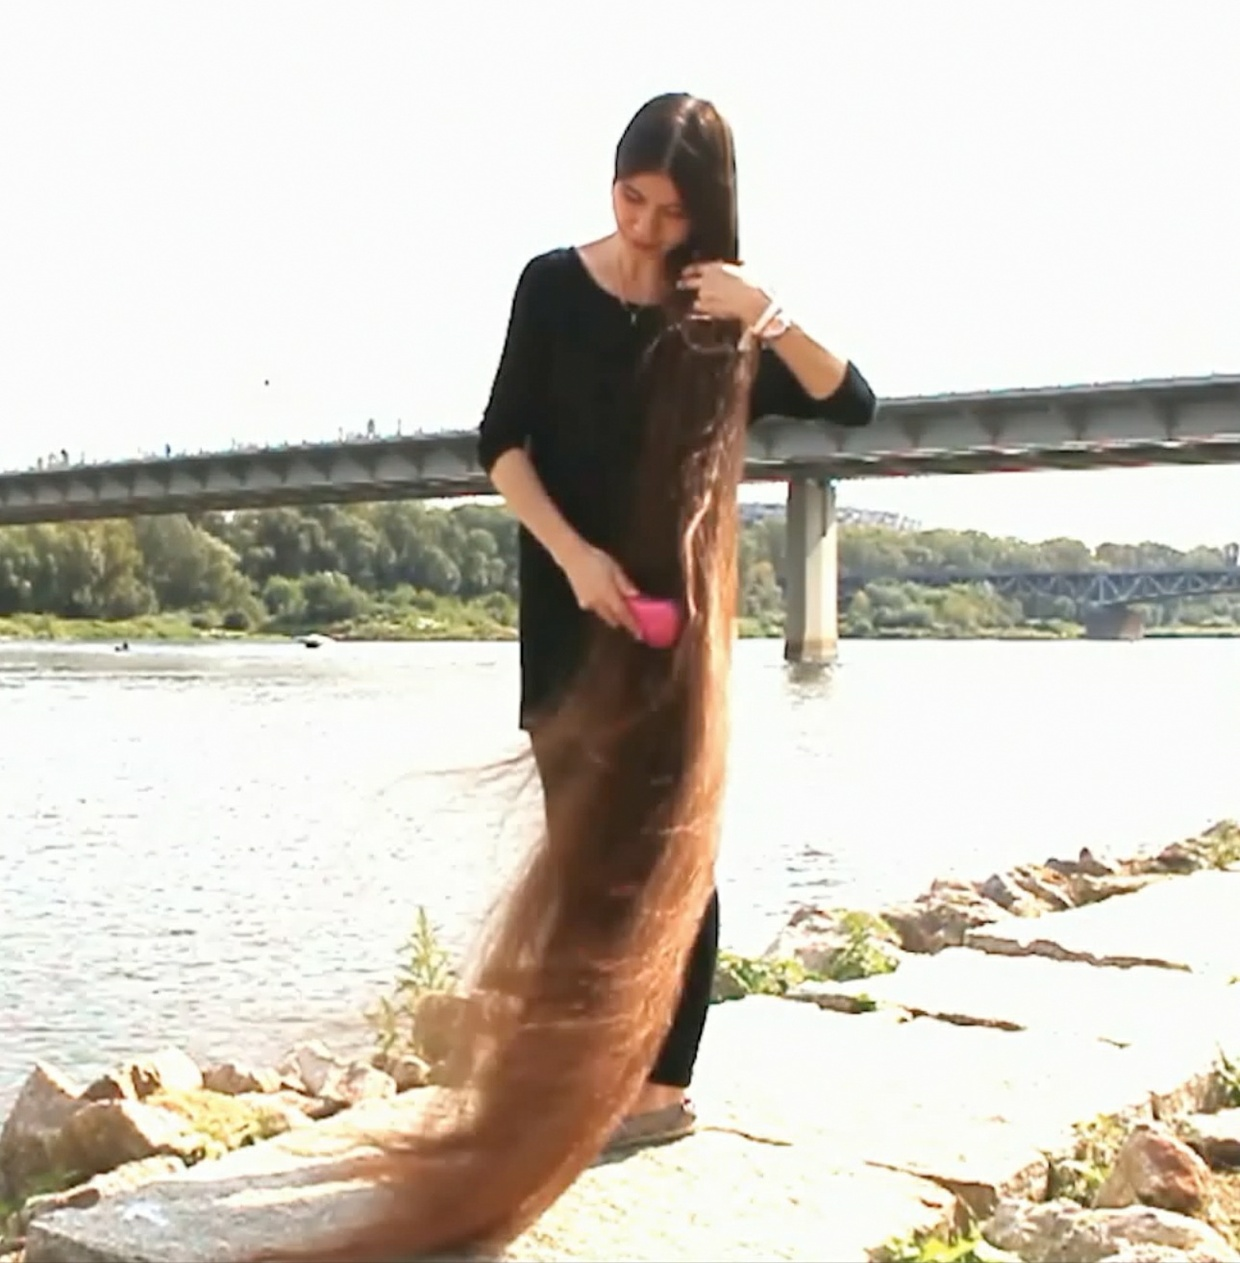 VIDEO - Longest hair in the wind